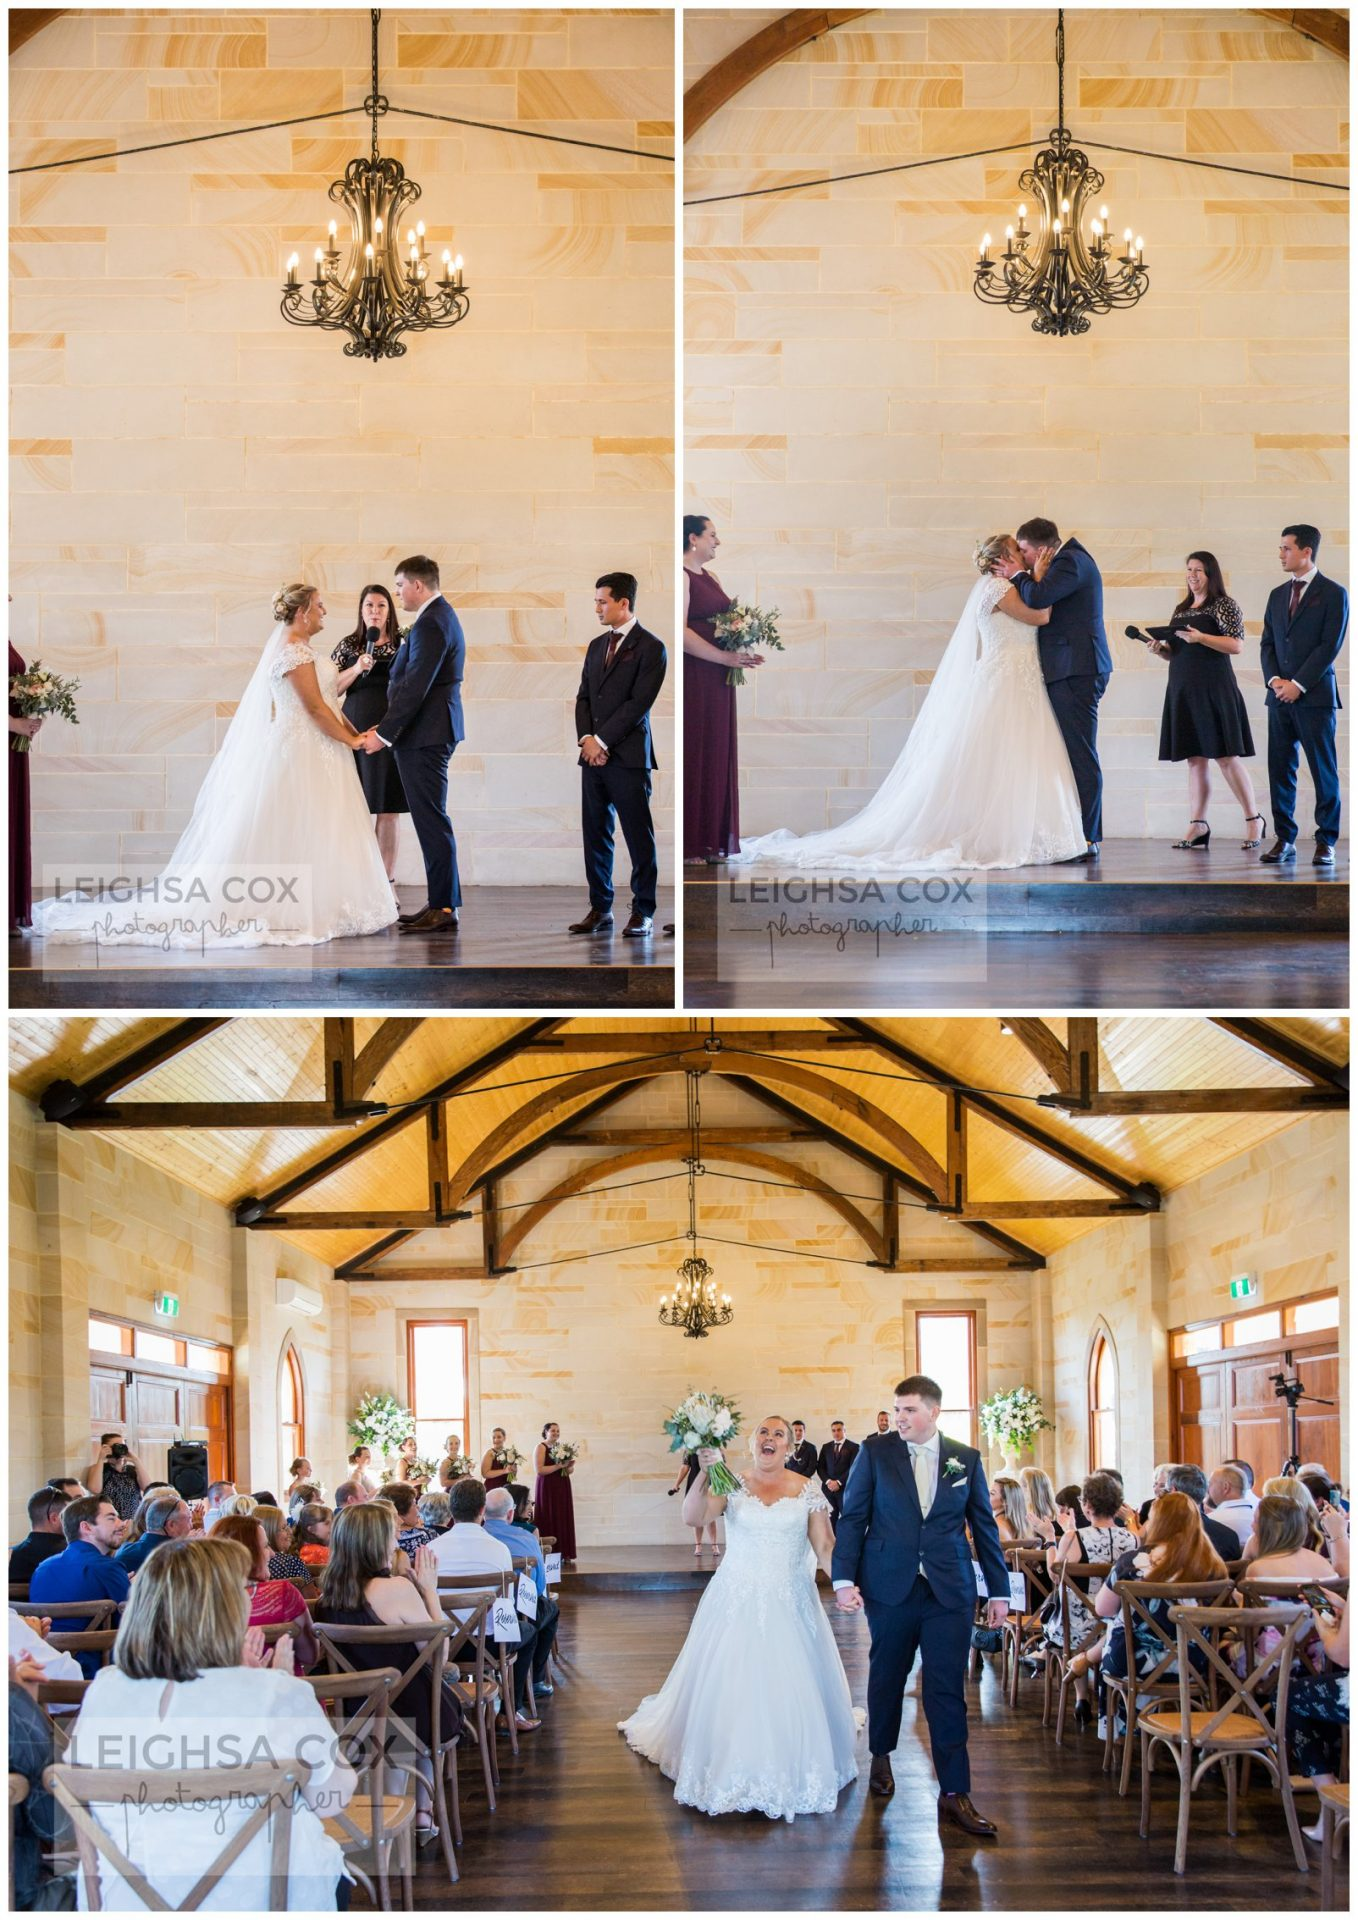 Peterson House chapel Wedding